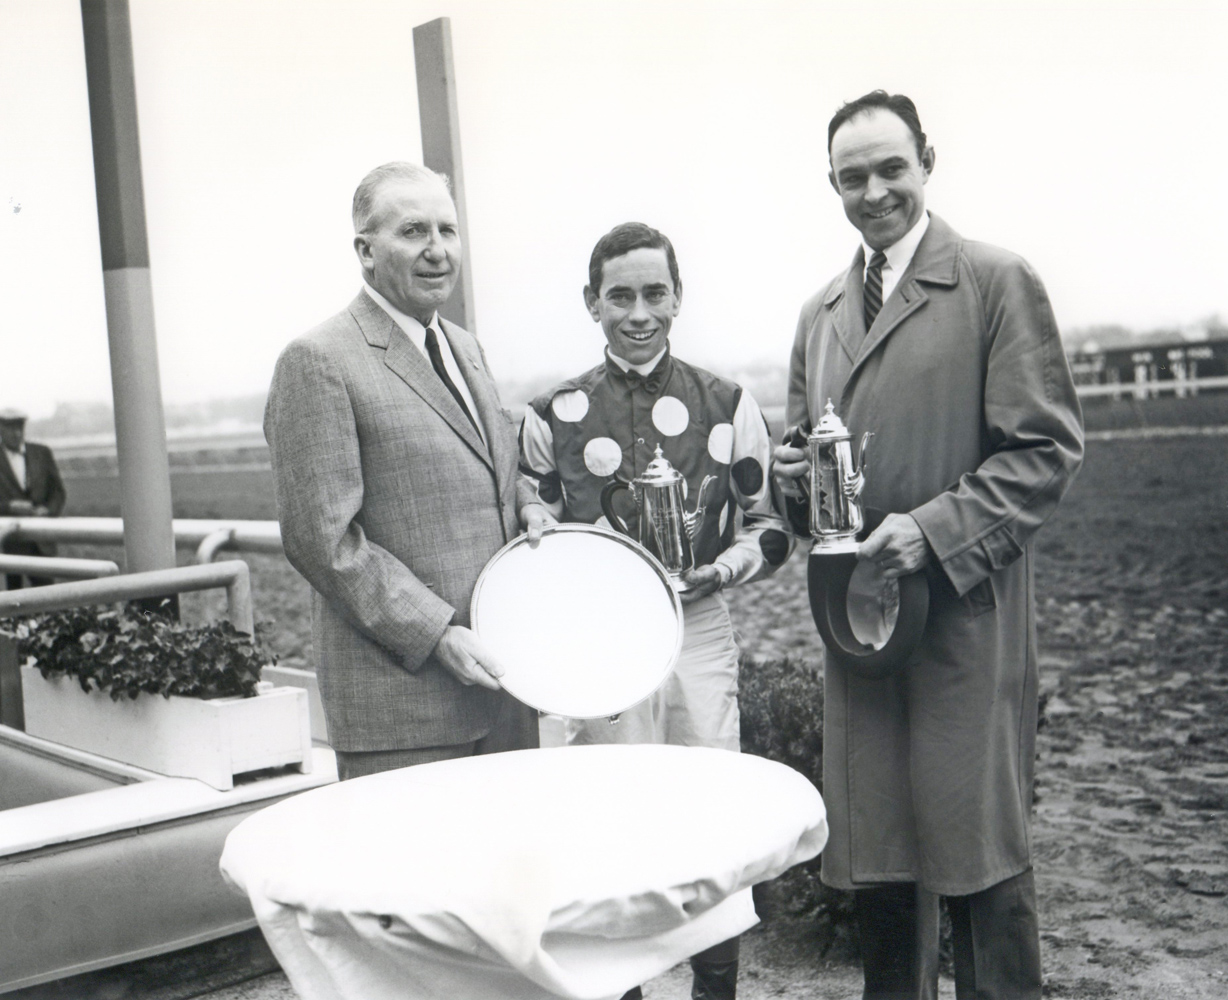 Jockey John Rotz and trainer T. J. Kelly at the trophy presentation for the 1961 Wood Memorial, won by Globemaster (Keeneland Library Morgan Collection/Museum Collection)